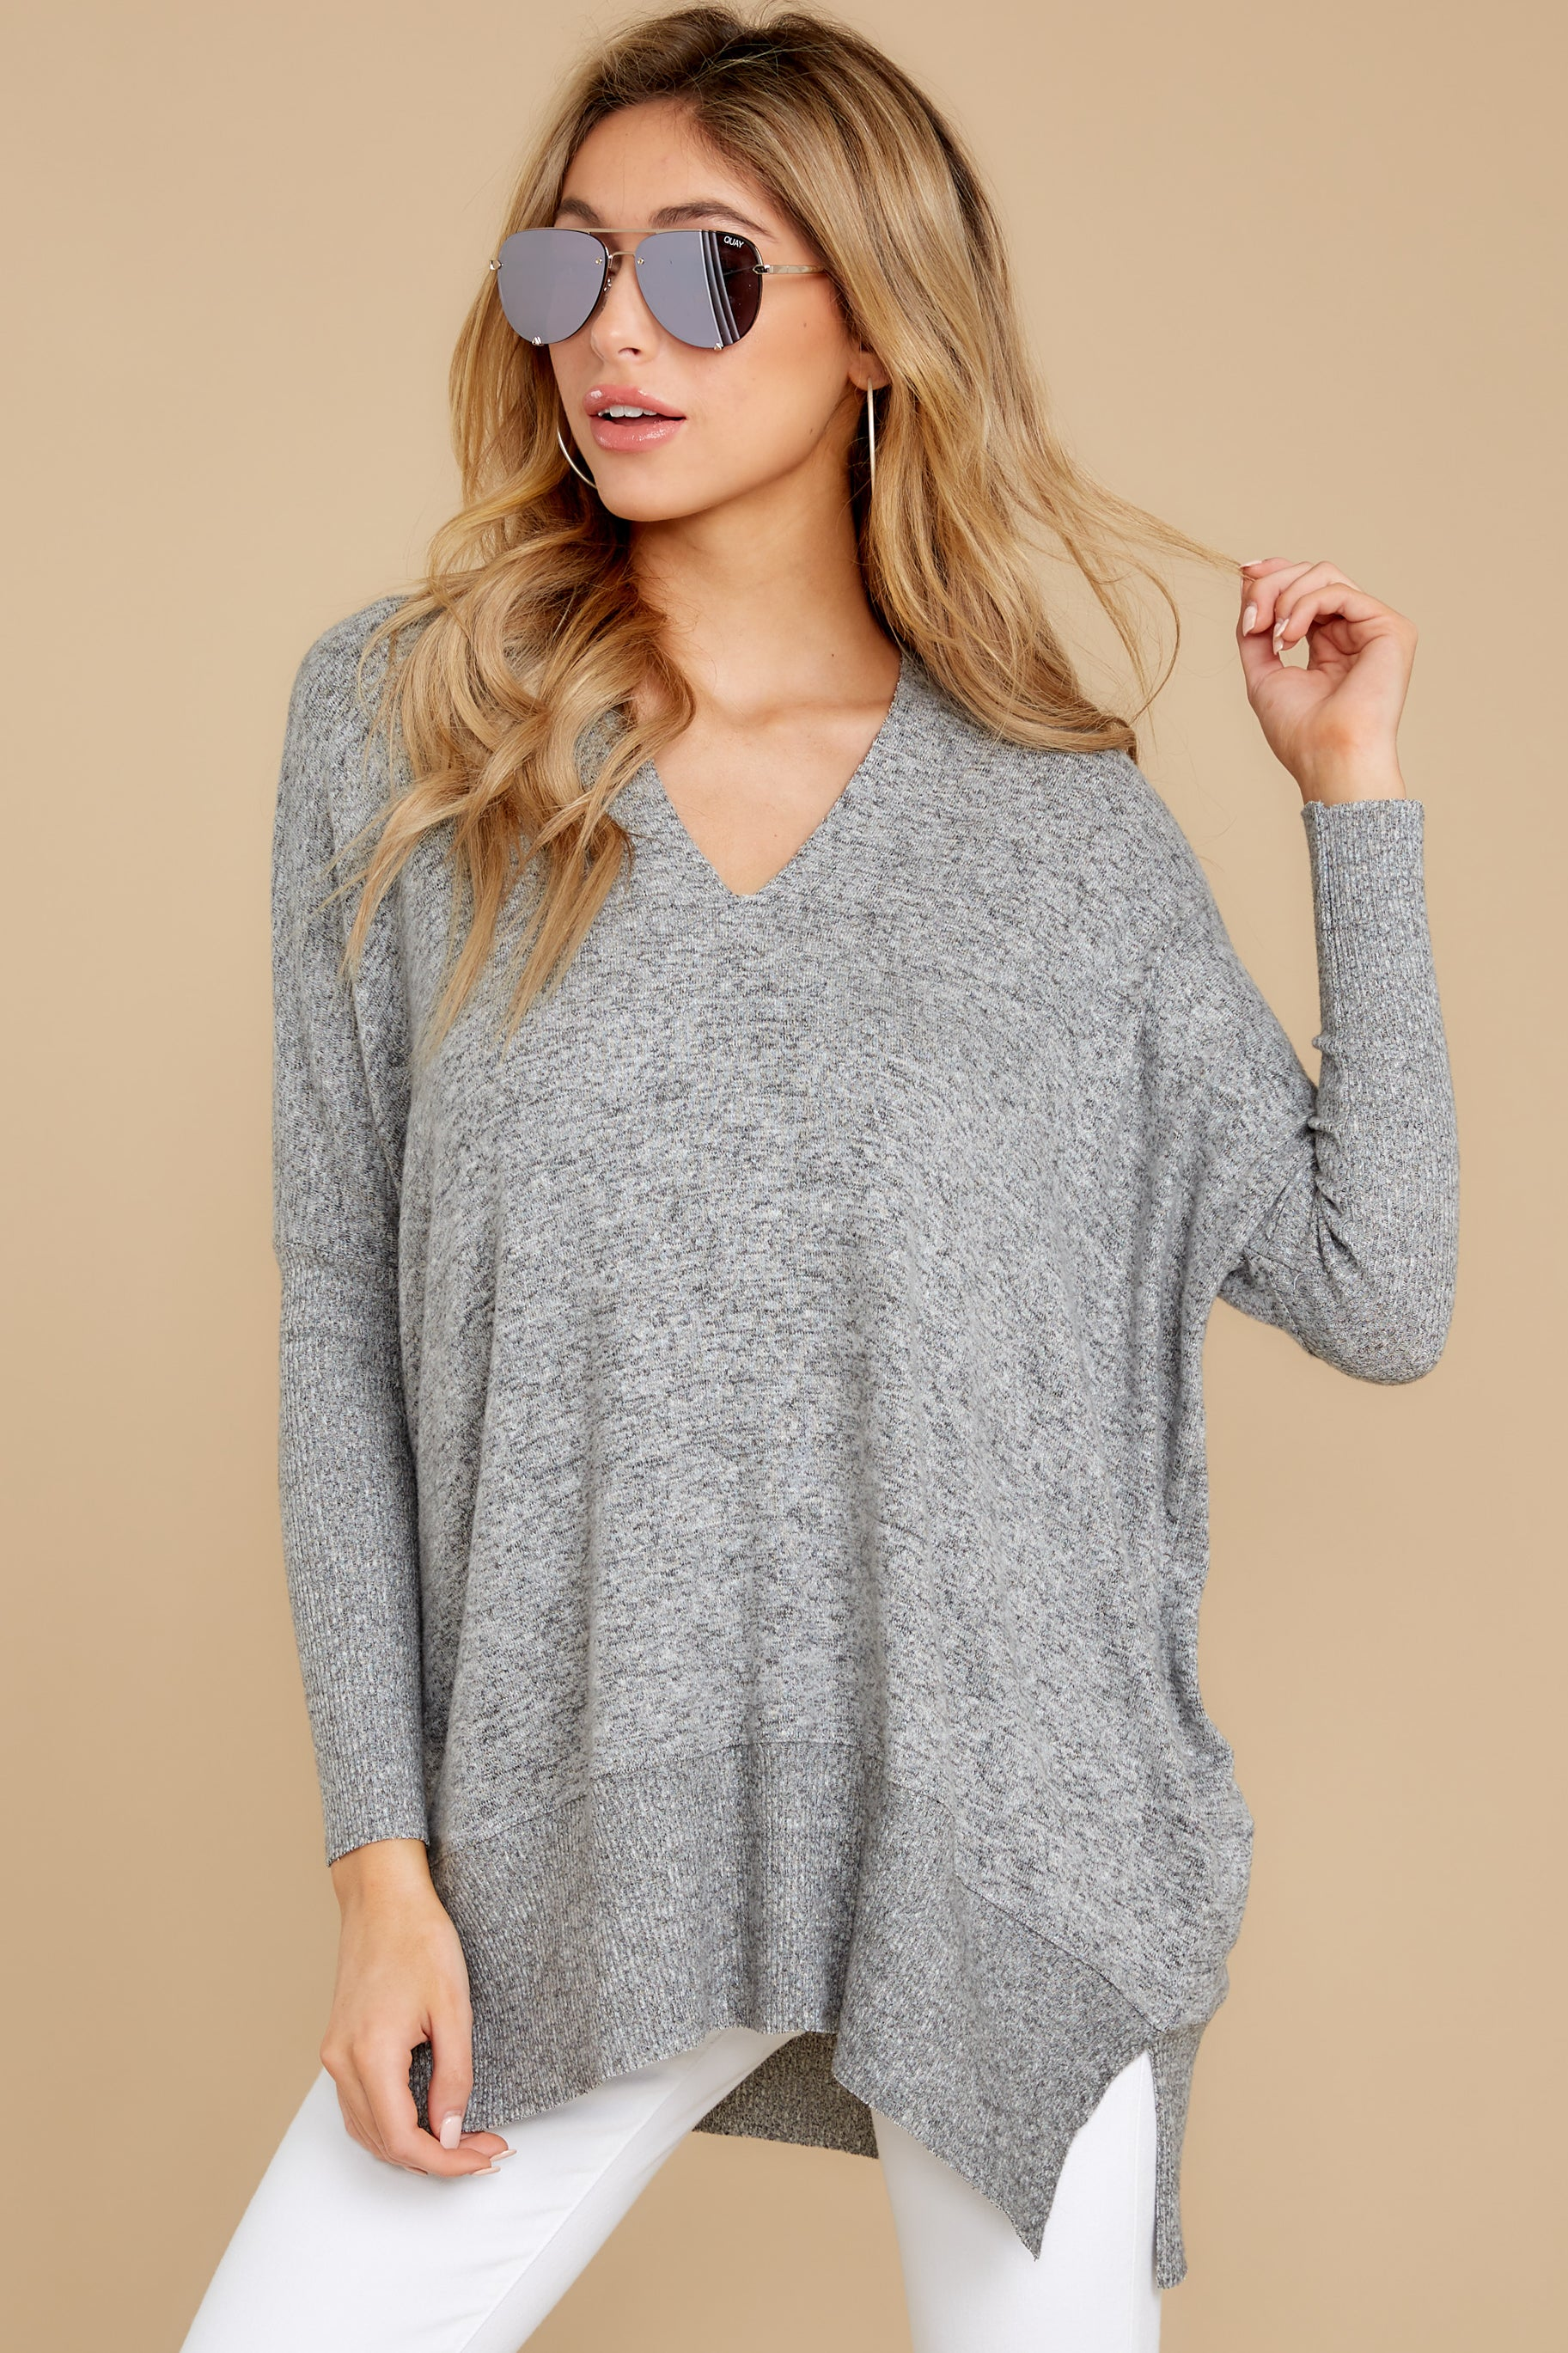 5 Any Which Way Heather Grey Sweater at reddressboutique.com